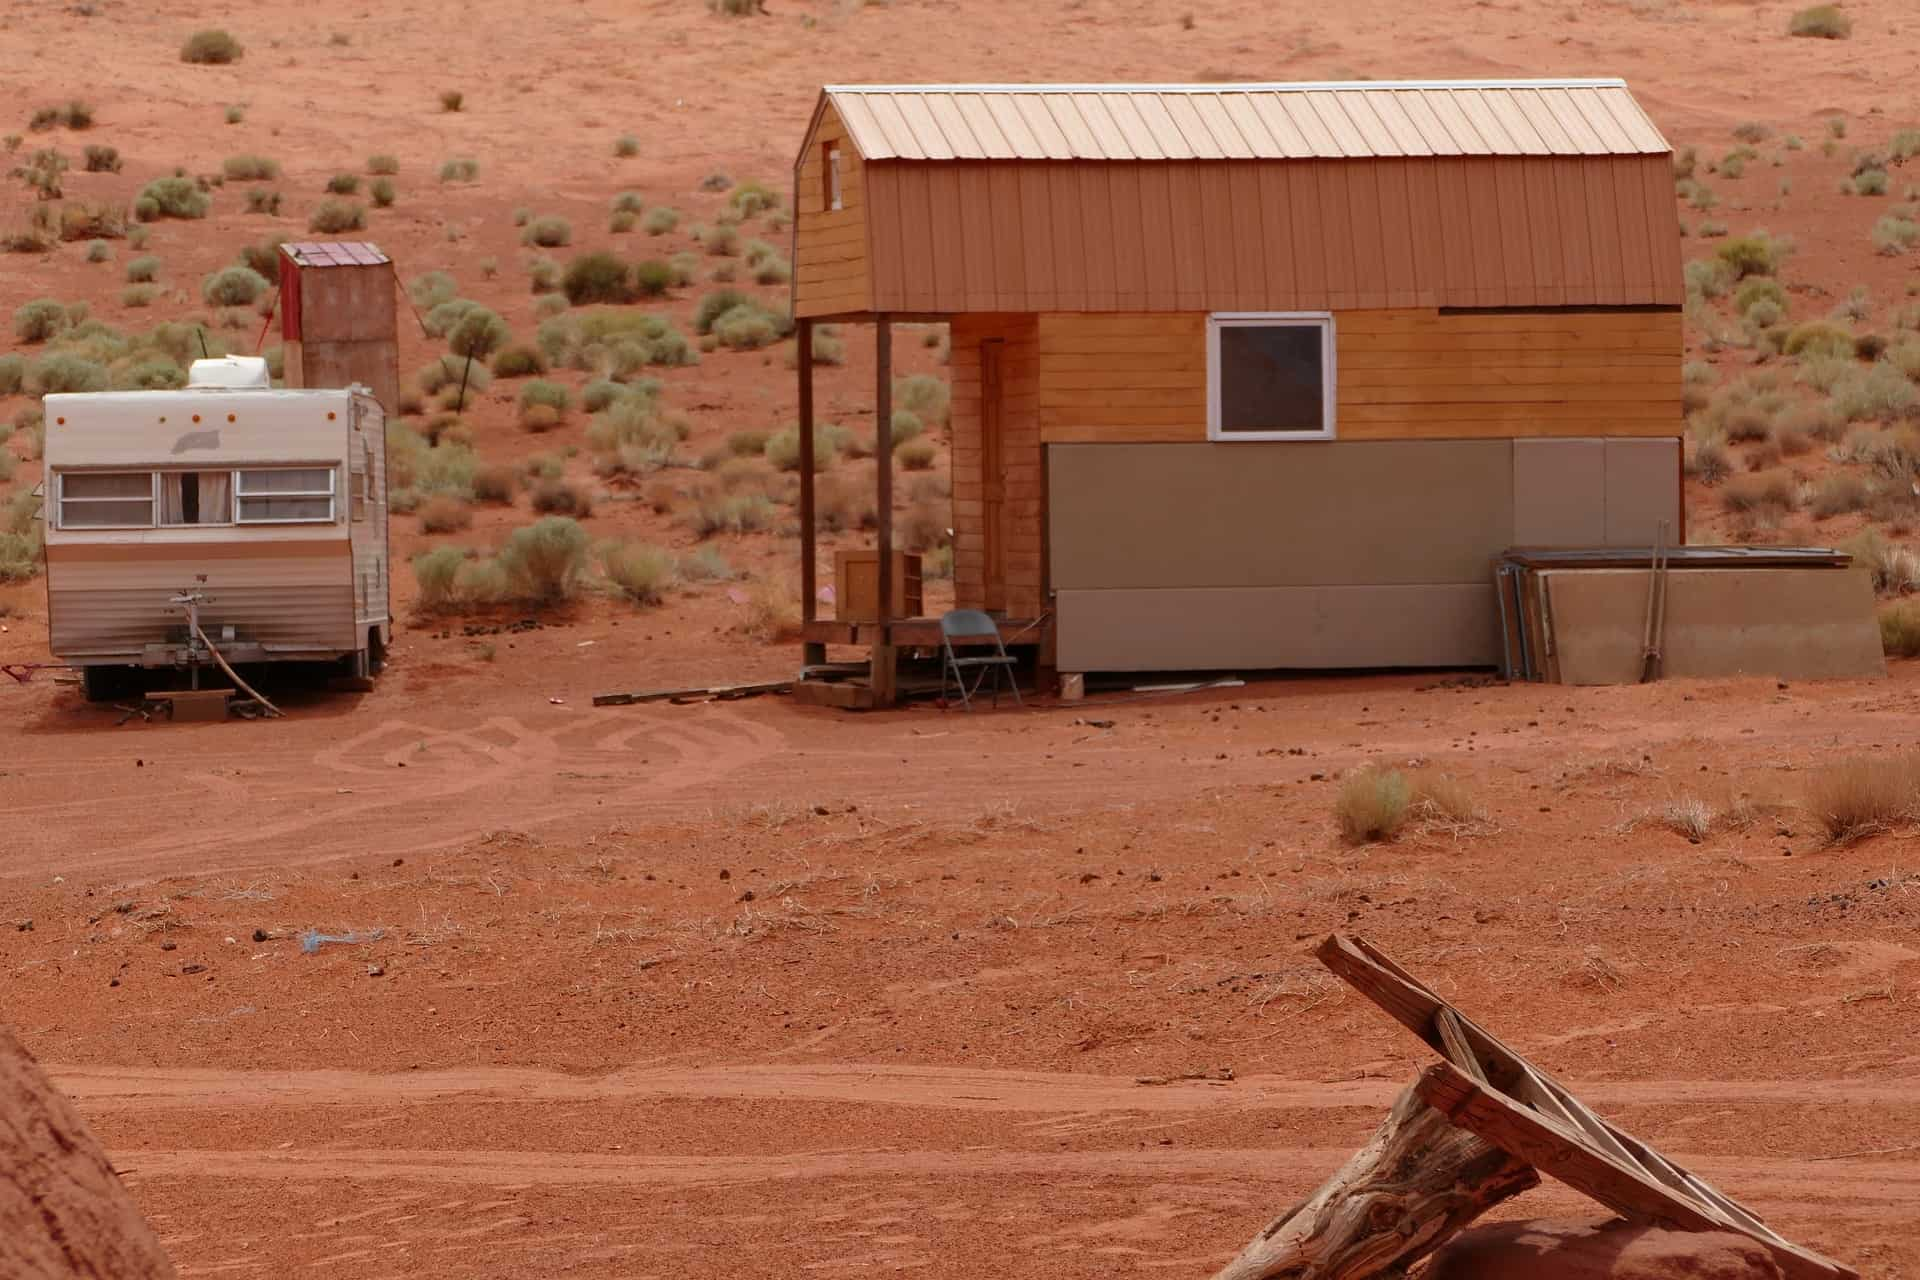 Tiny house navajo monument valley